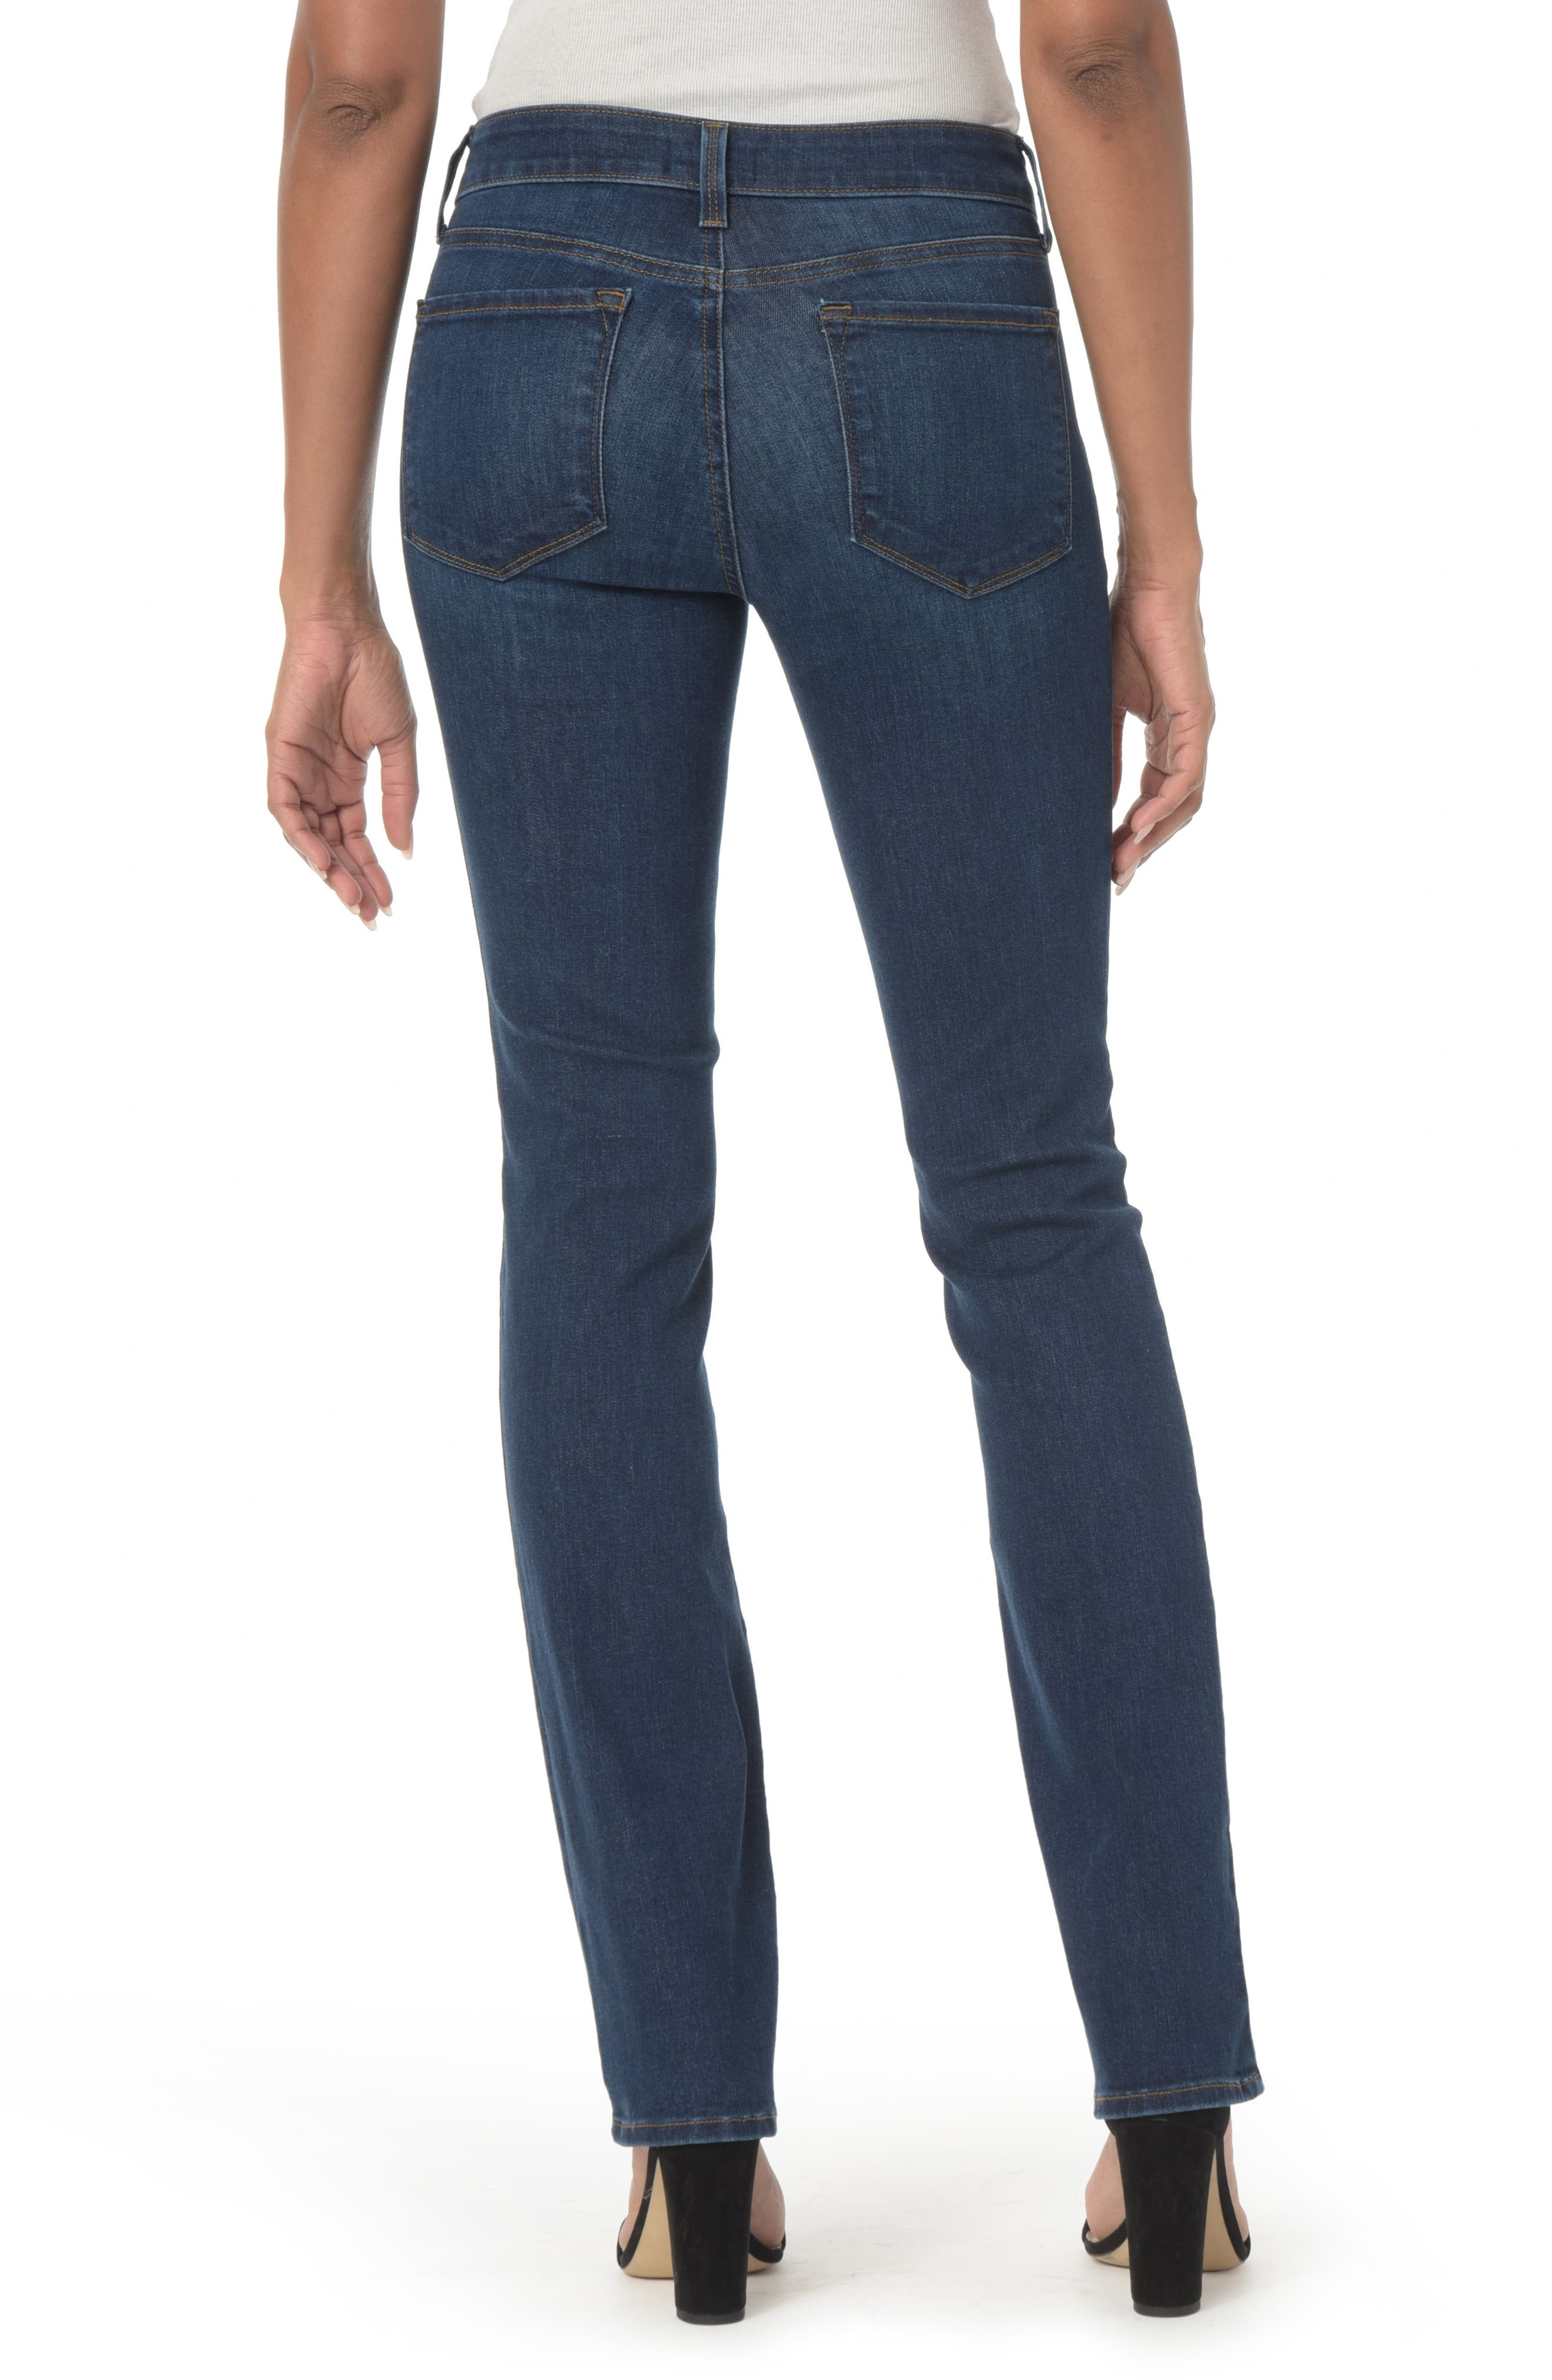 Marilyn Stretch Straight Leg Jeans,                             Alternate thumbnail 2, color,                             Cooper